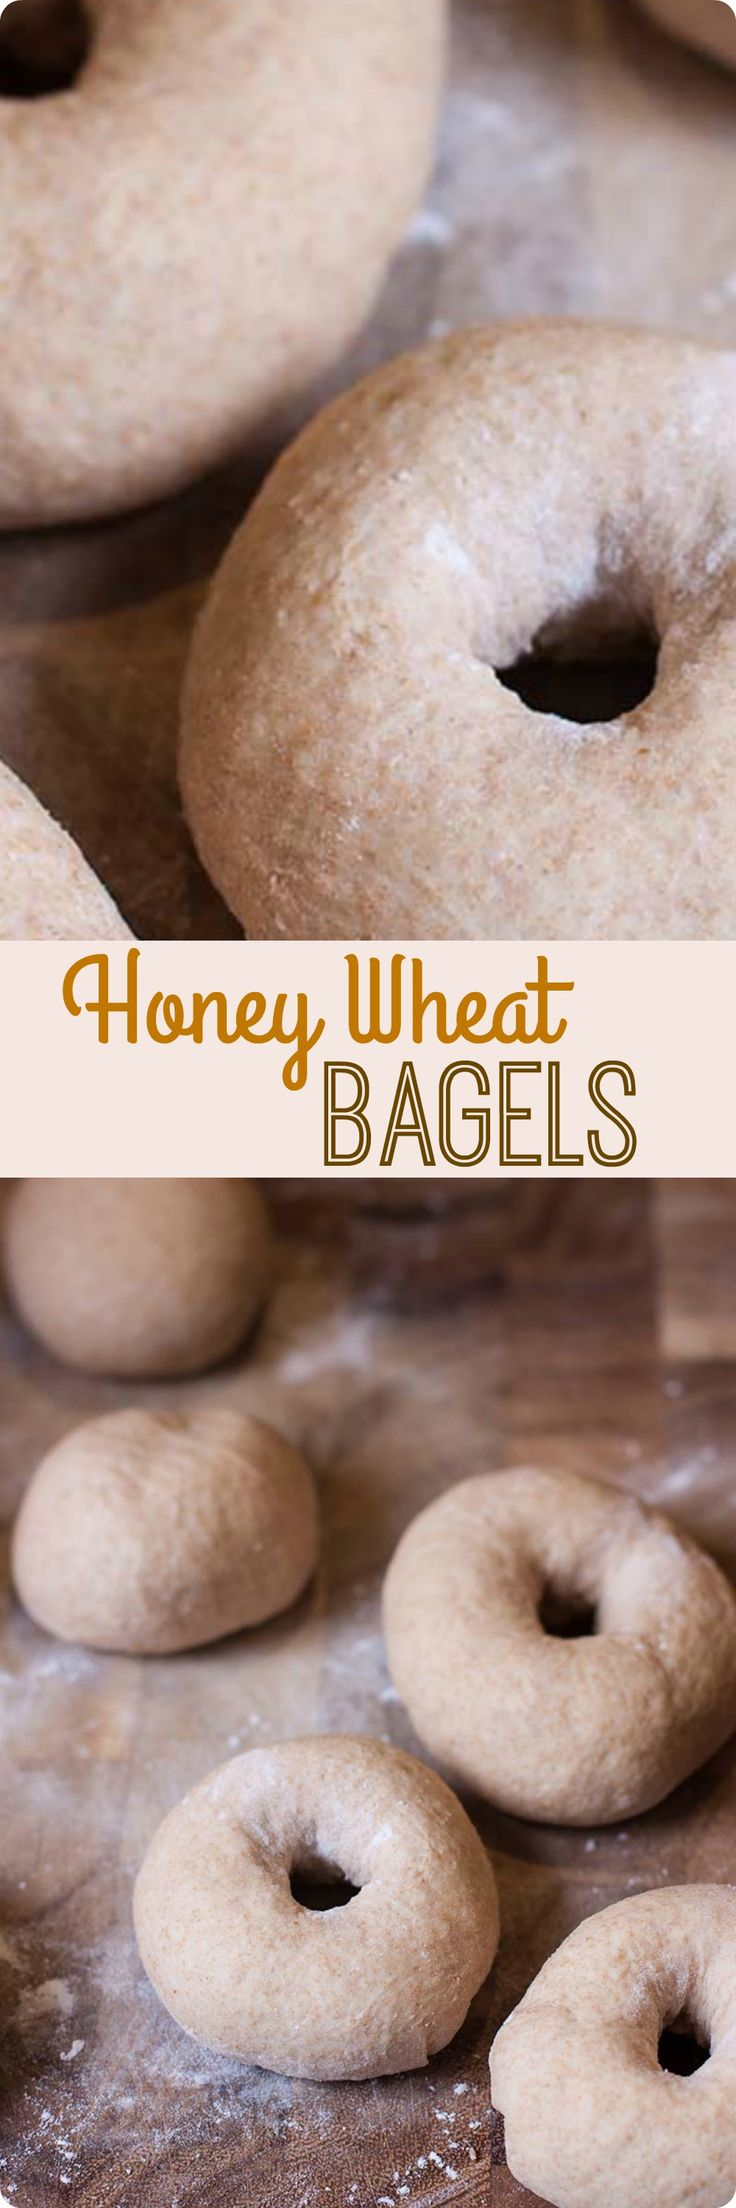 Honey Wheat Bagels | No need to stop at the local bagel shop! These honey wheat bagels are easy to make at home. Mix in chocolate chips or raisins to recreate your favorite flavors. Find recipe at redstaryeast.com.